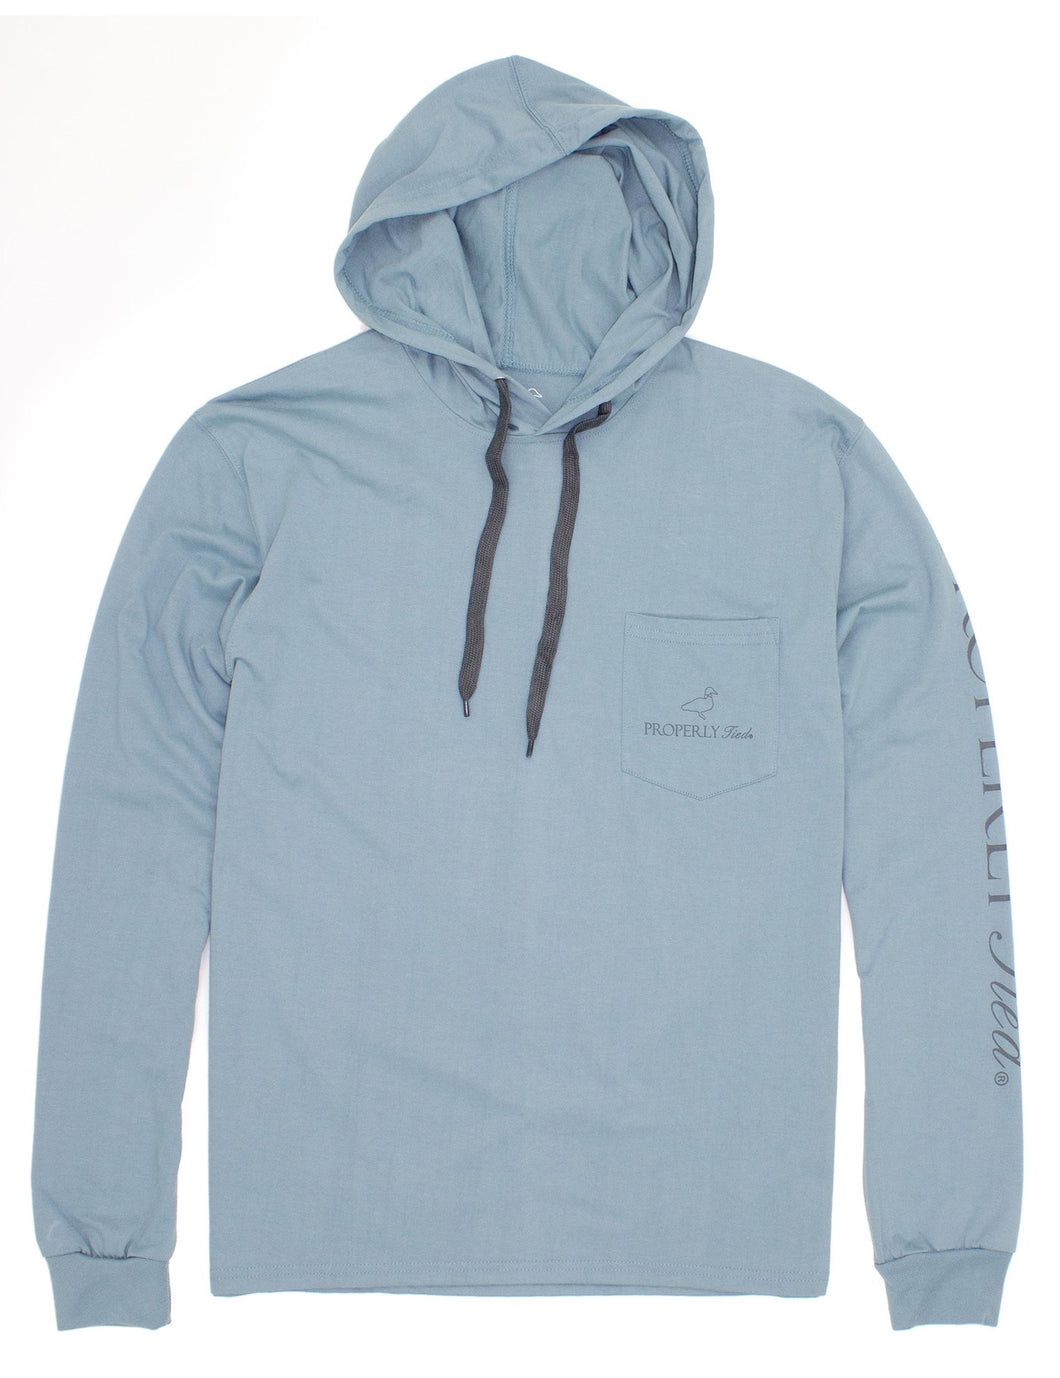 Properly Tied Gulf Hoodie Steel Blue